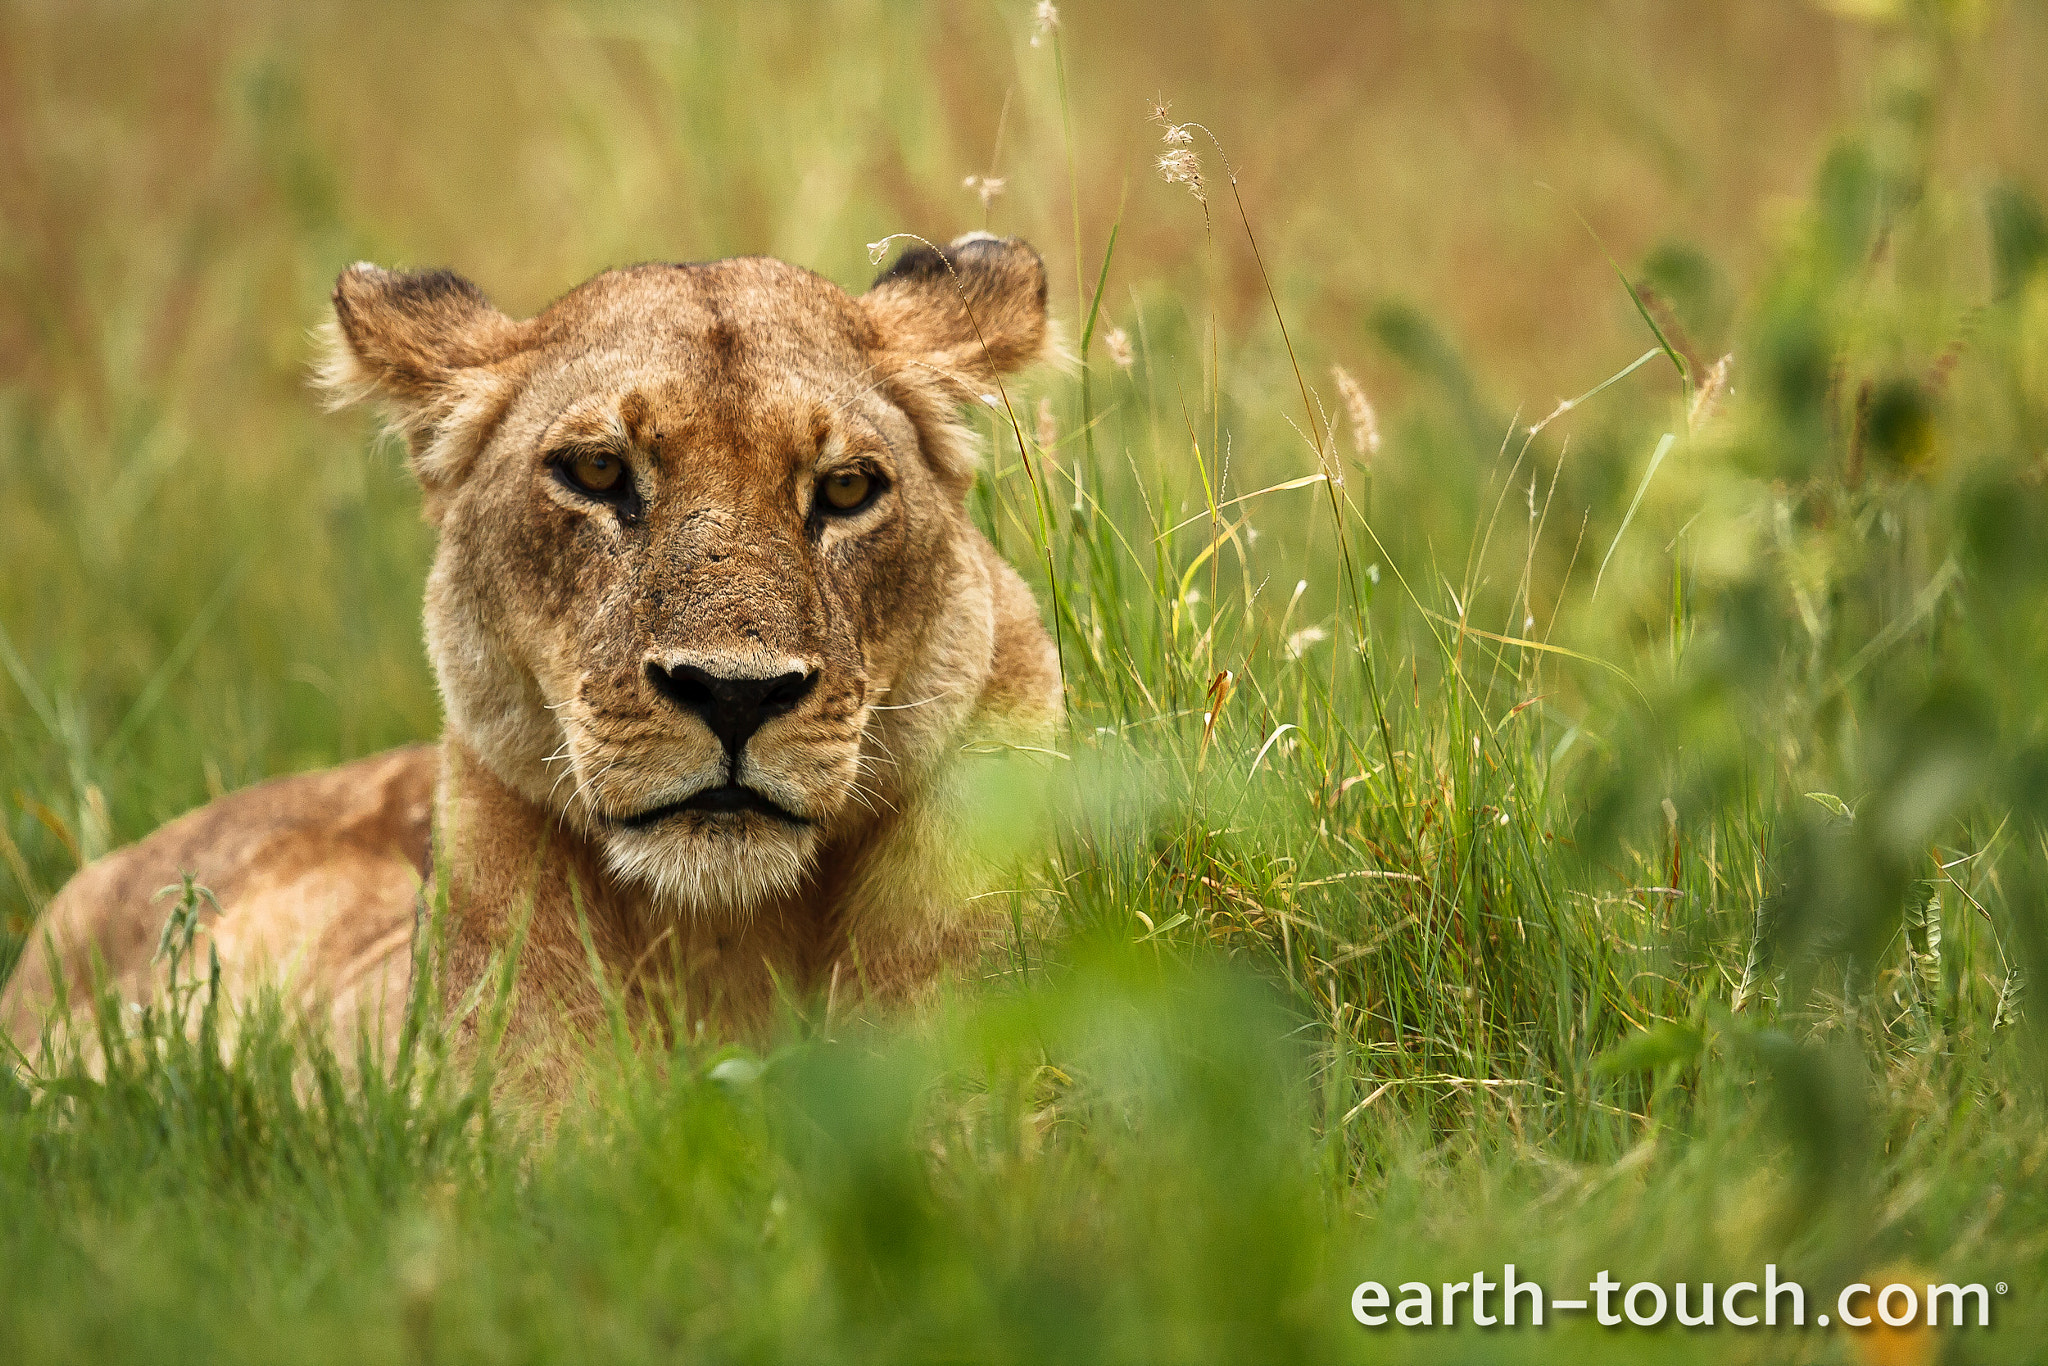 Photograph Grumpy lioness by Earth Touch on 500px